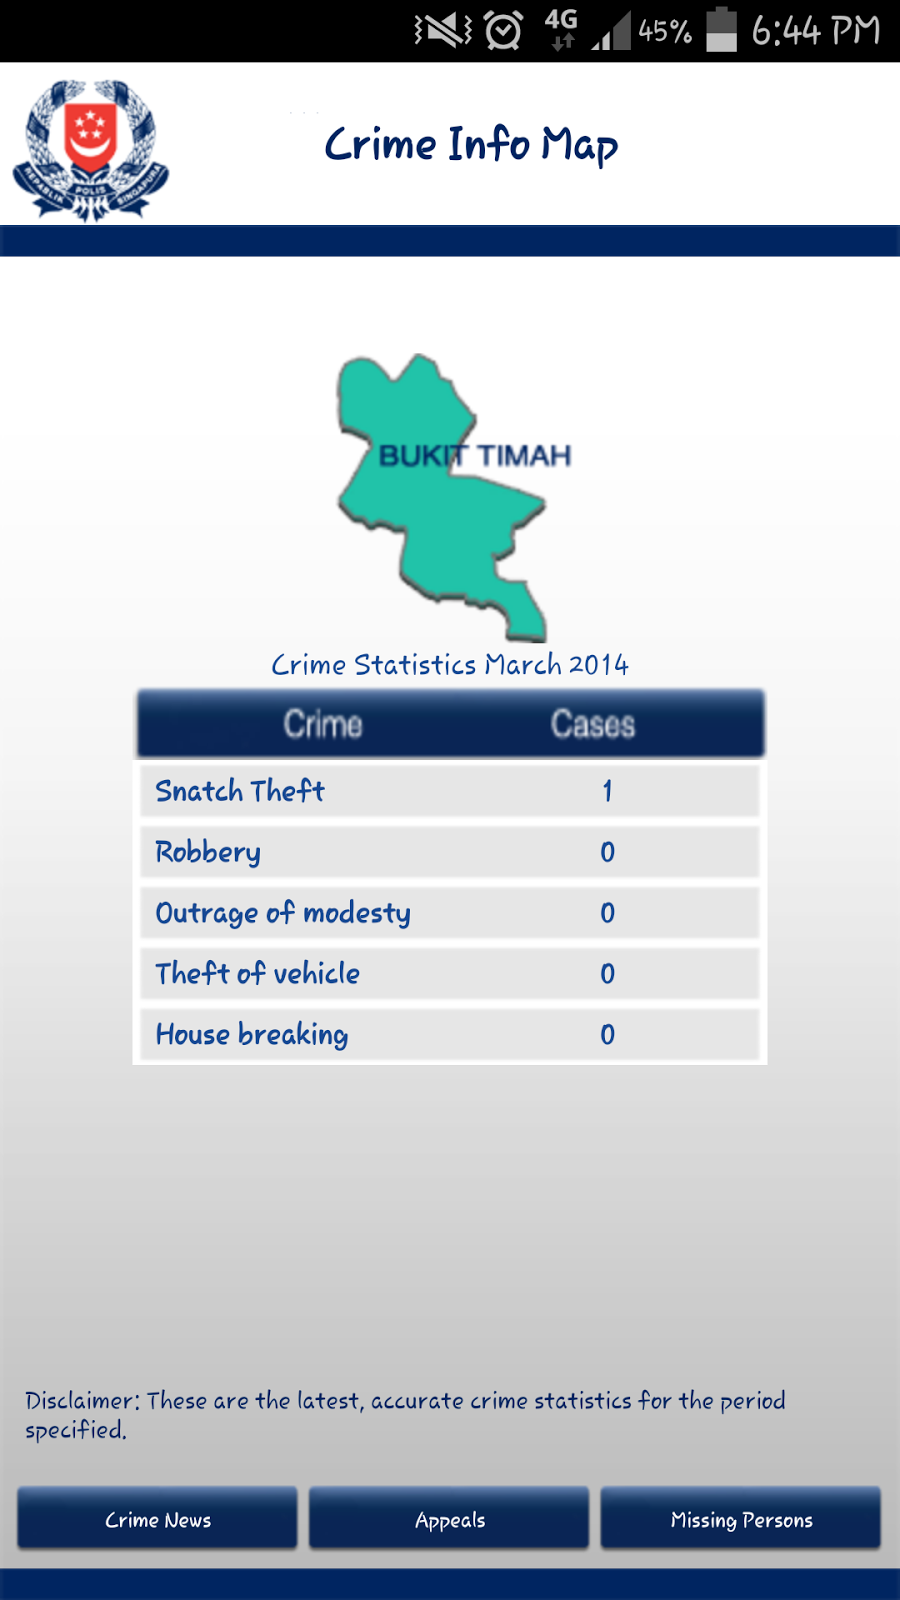 criminal snatch theft essay Theft, snatch theft, vehicle theft, machinery theft, house break in violent crimes consists of robbery, assault, rape and murder from jan-feb 2011 showed the decreases from 26 664 to 26 611 in 2012.